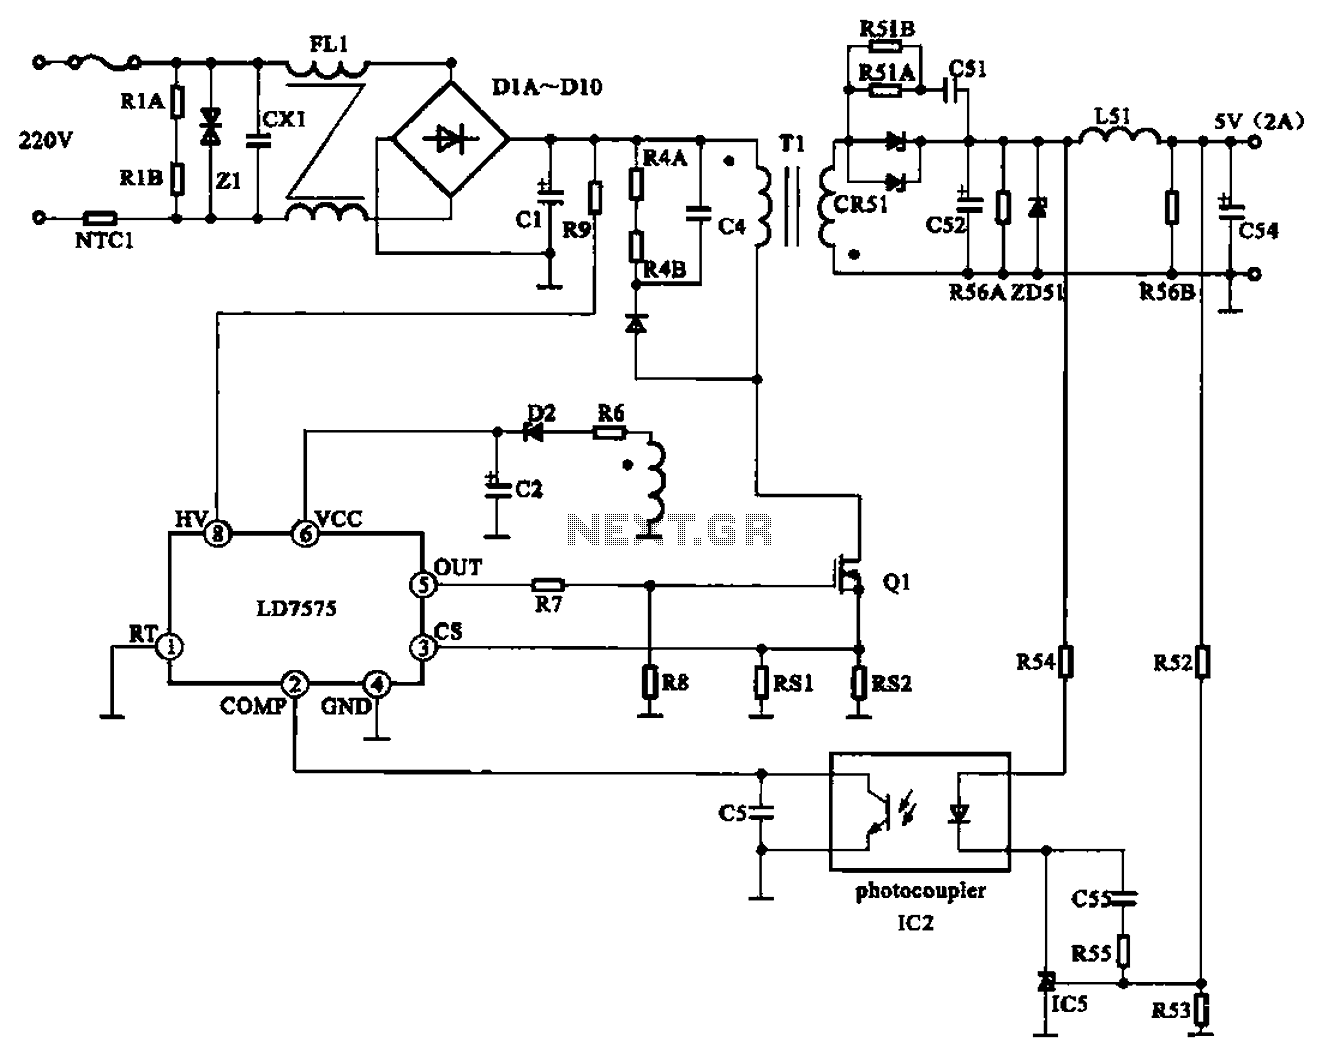 inverter output wiring diagram